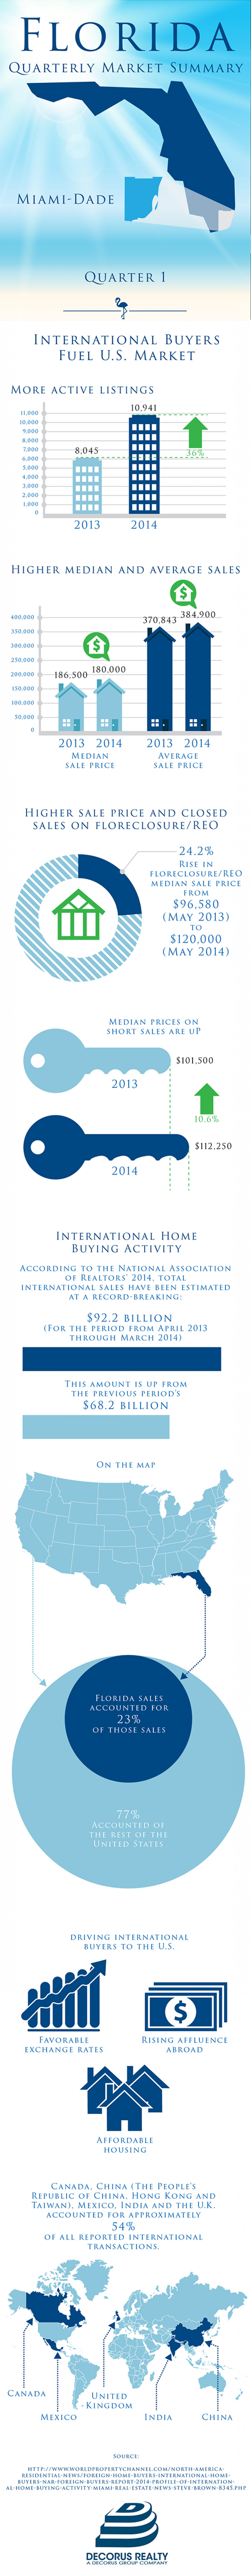 Florida Quarterly Market Summary Infographic